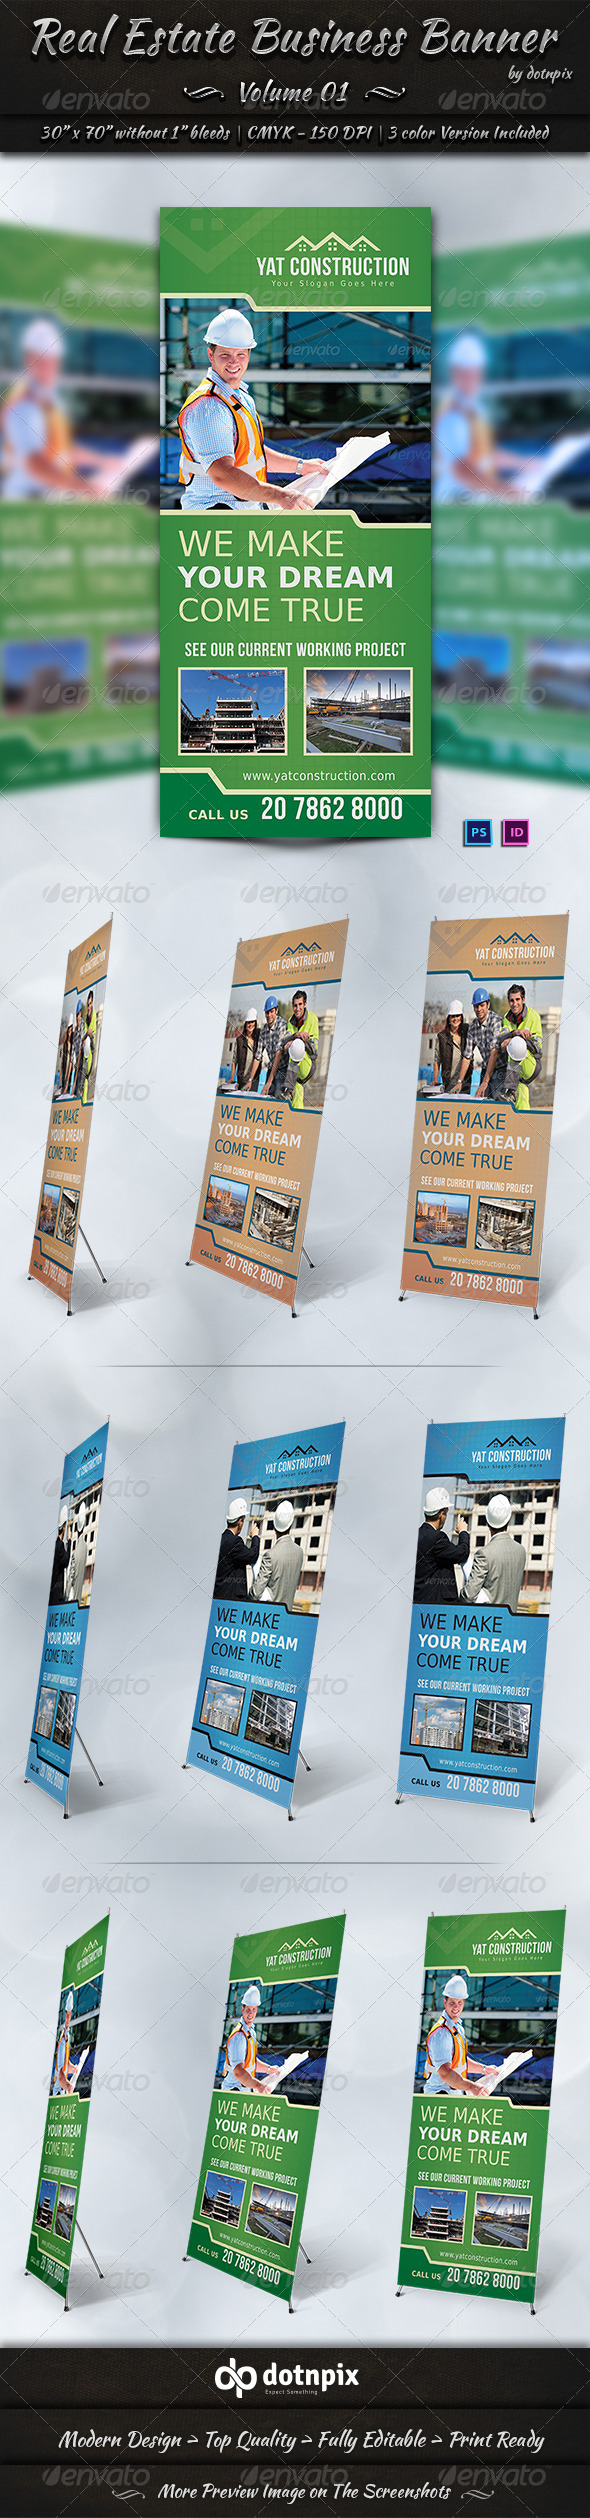 GraphicRiver Real Estate Business Banner Volume 1 7148687